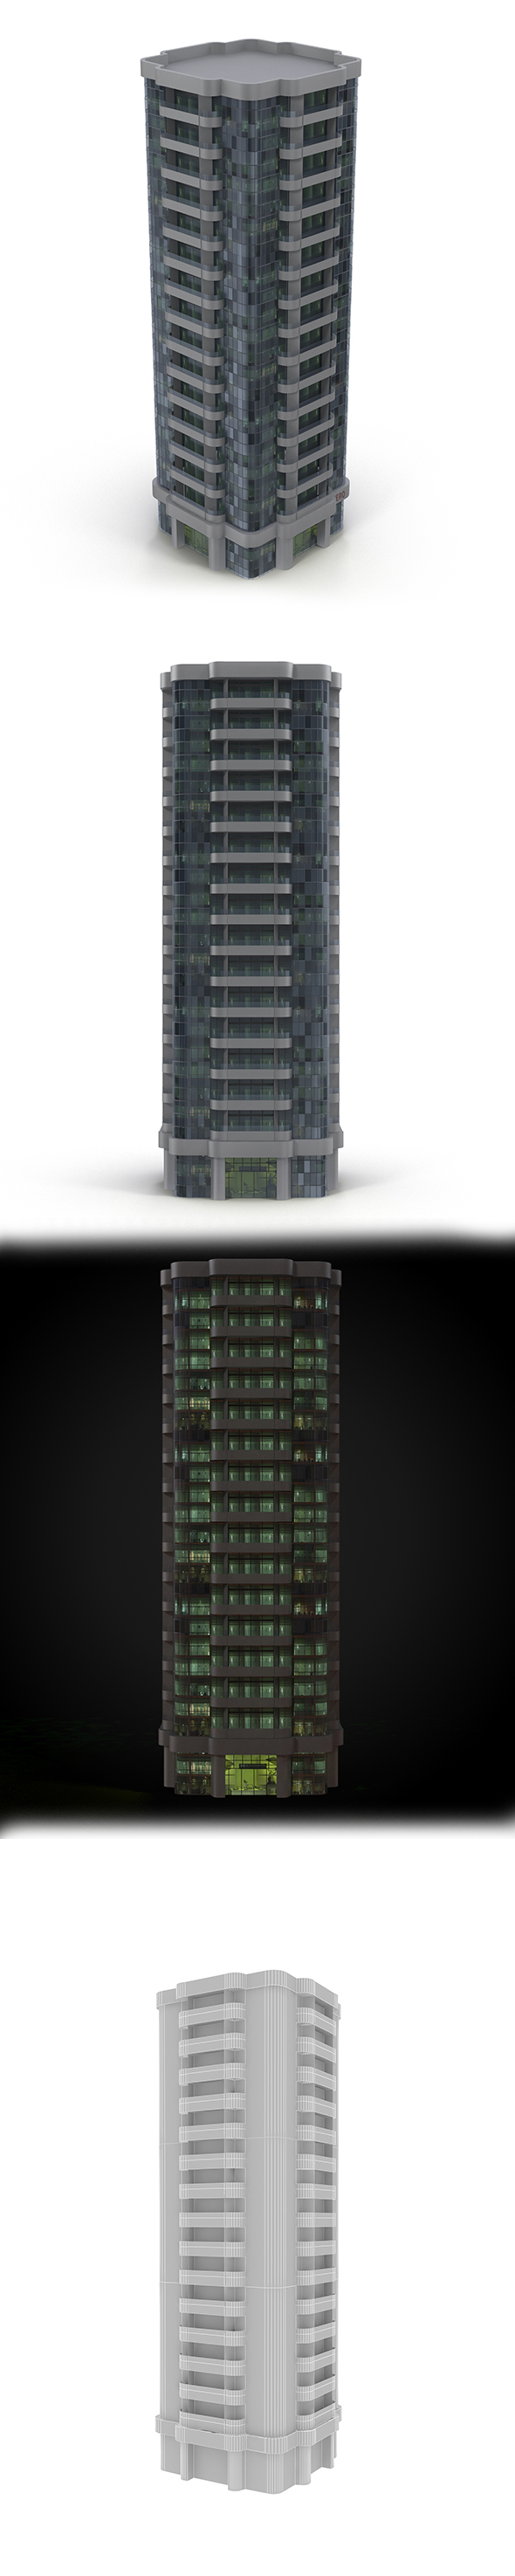 Skyscraper_1 - 3DOcean Item for Sale